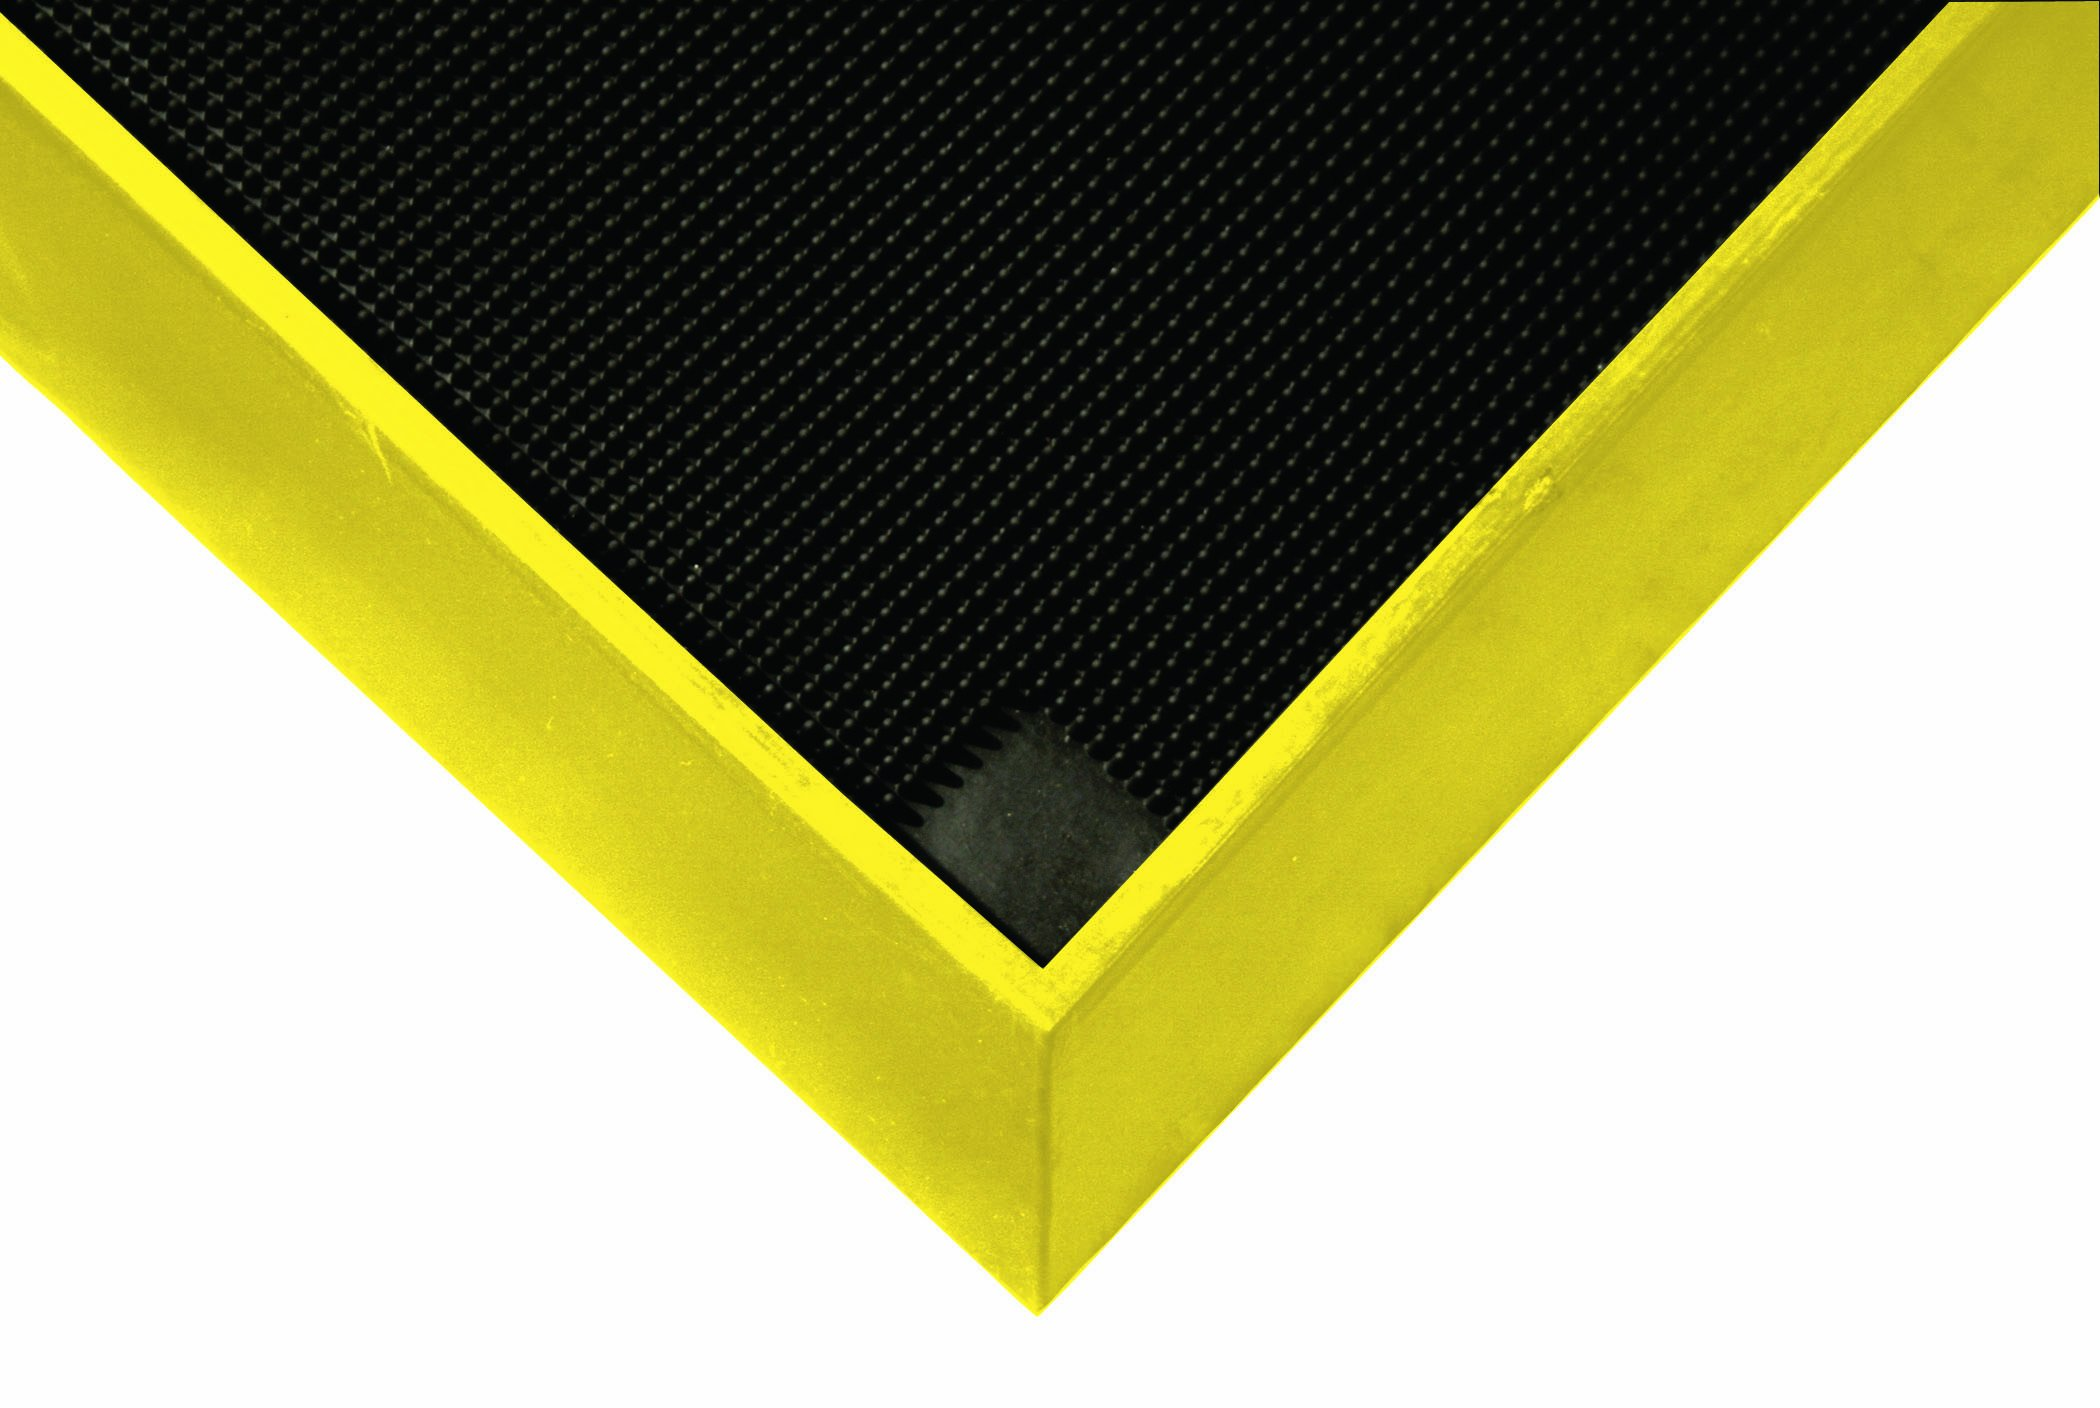 Wearwell Natural Rubber 222 Anti-Fatigue Sanitizing Footbath Mat, for Food Processing Facilities, 32'' Width x 39'' Length x 2-1/2'' Thickness, Black / Yellow